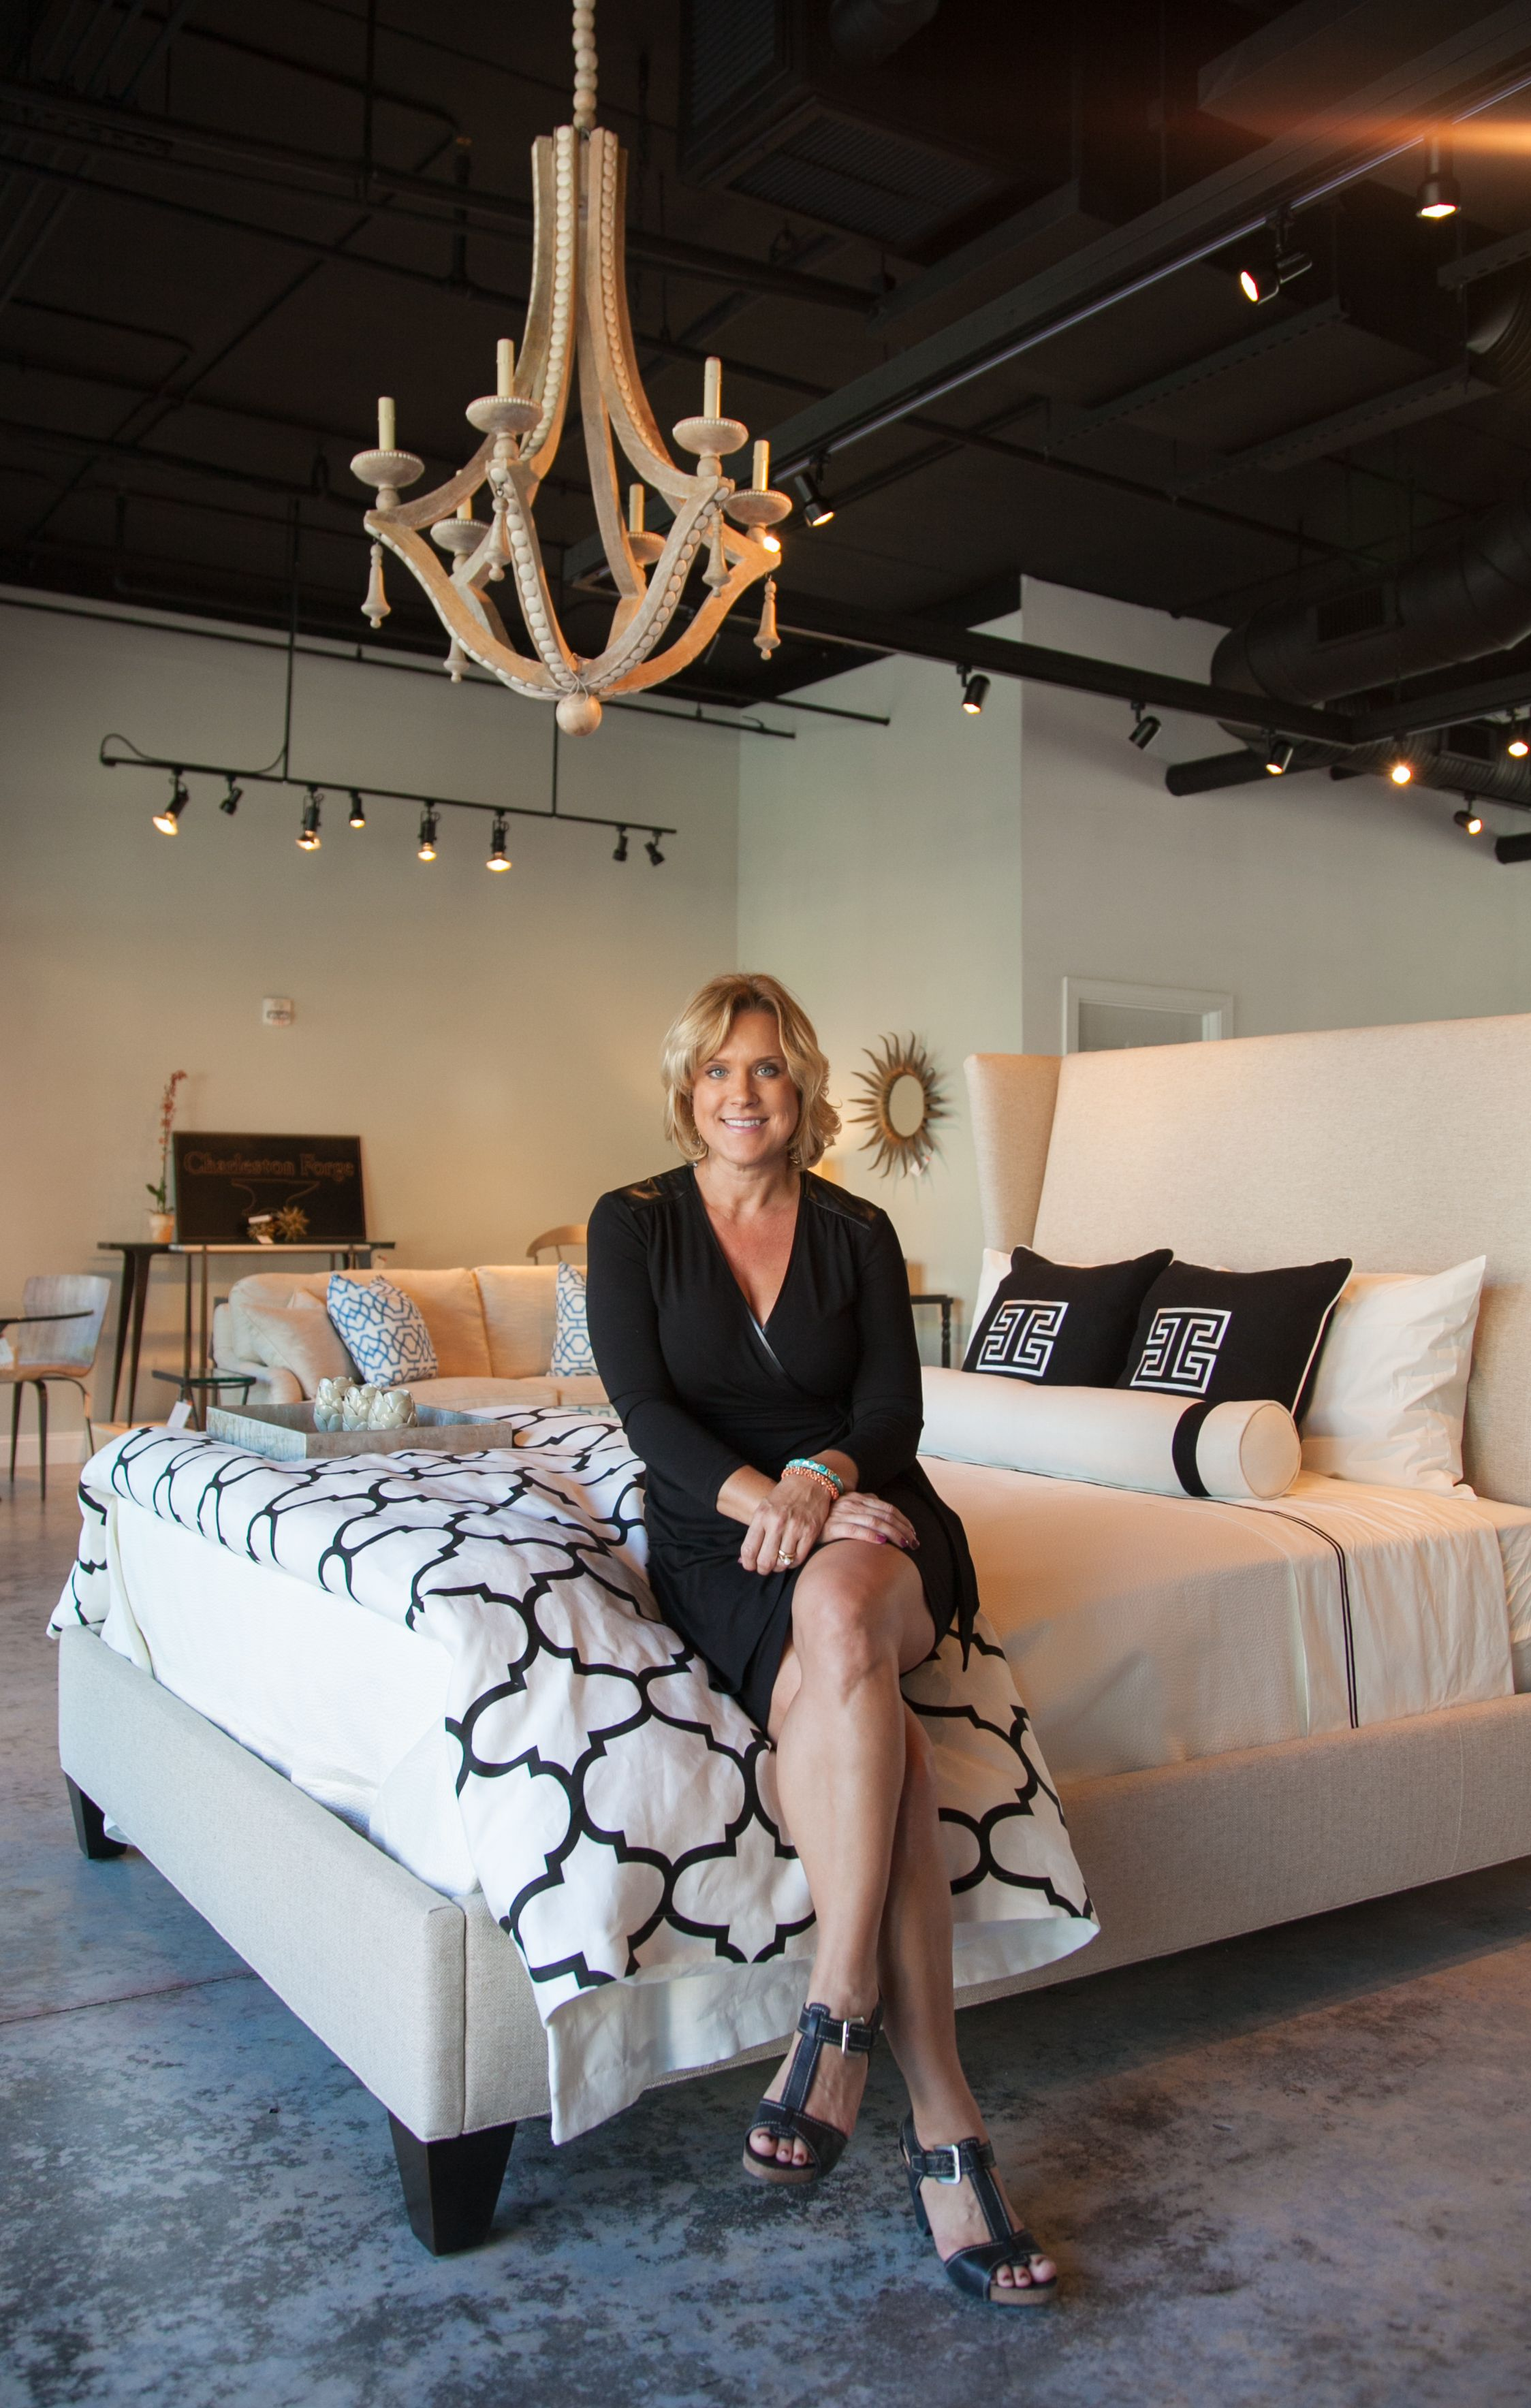 Bobbi Jo Engelby Interior Designer And Owner Of Domain Interiors